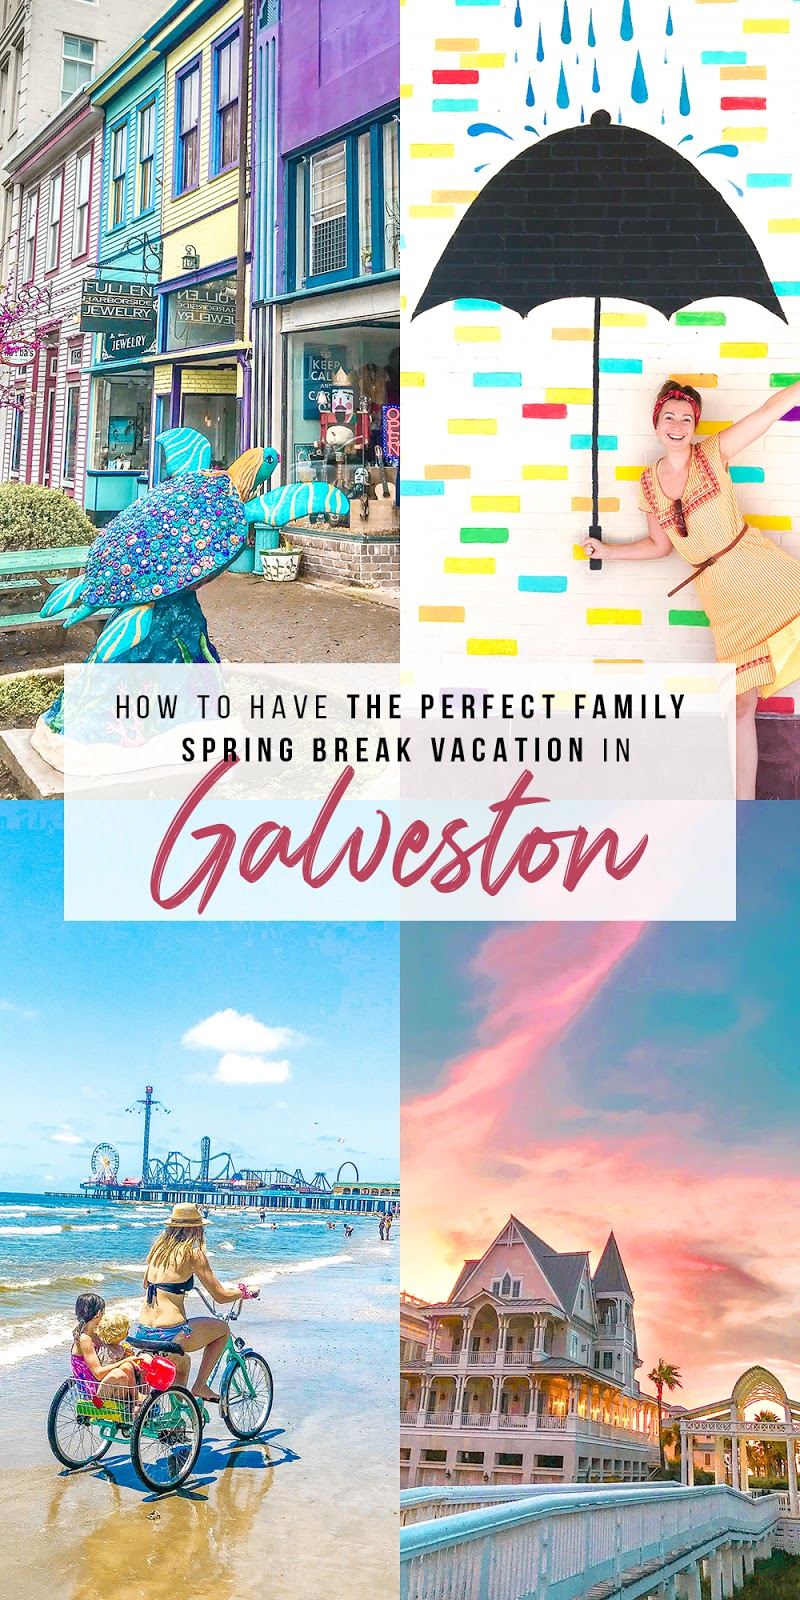 The Perfect Family Spring Break Vacation in Galveston